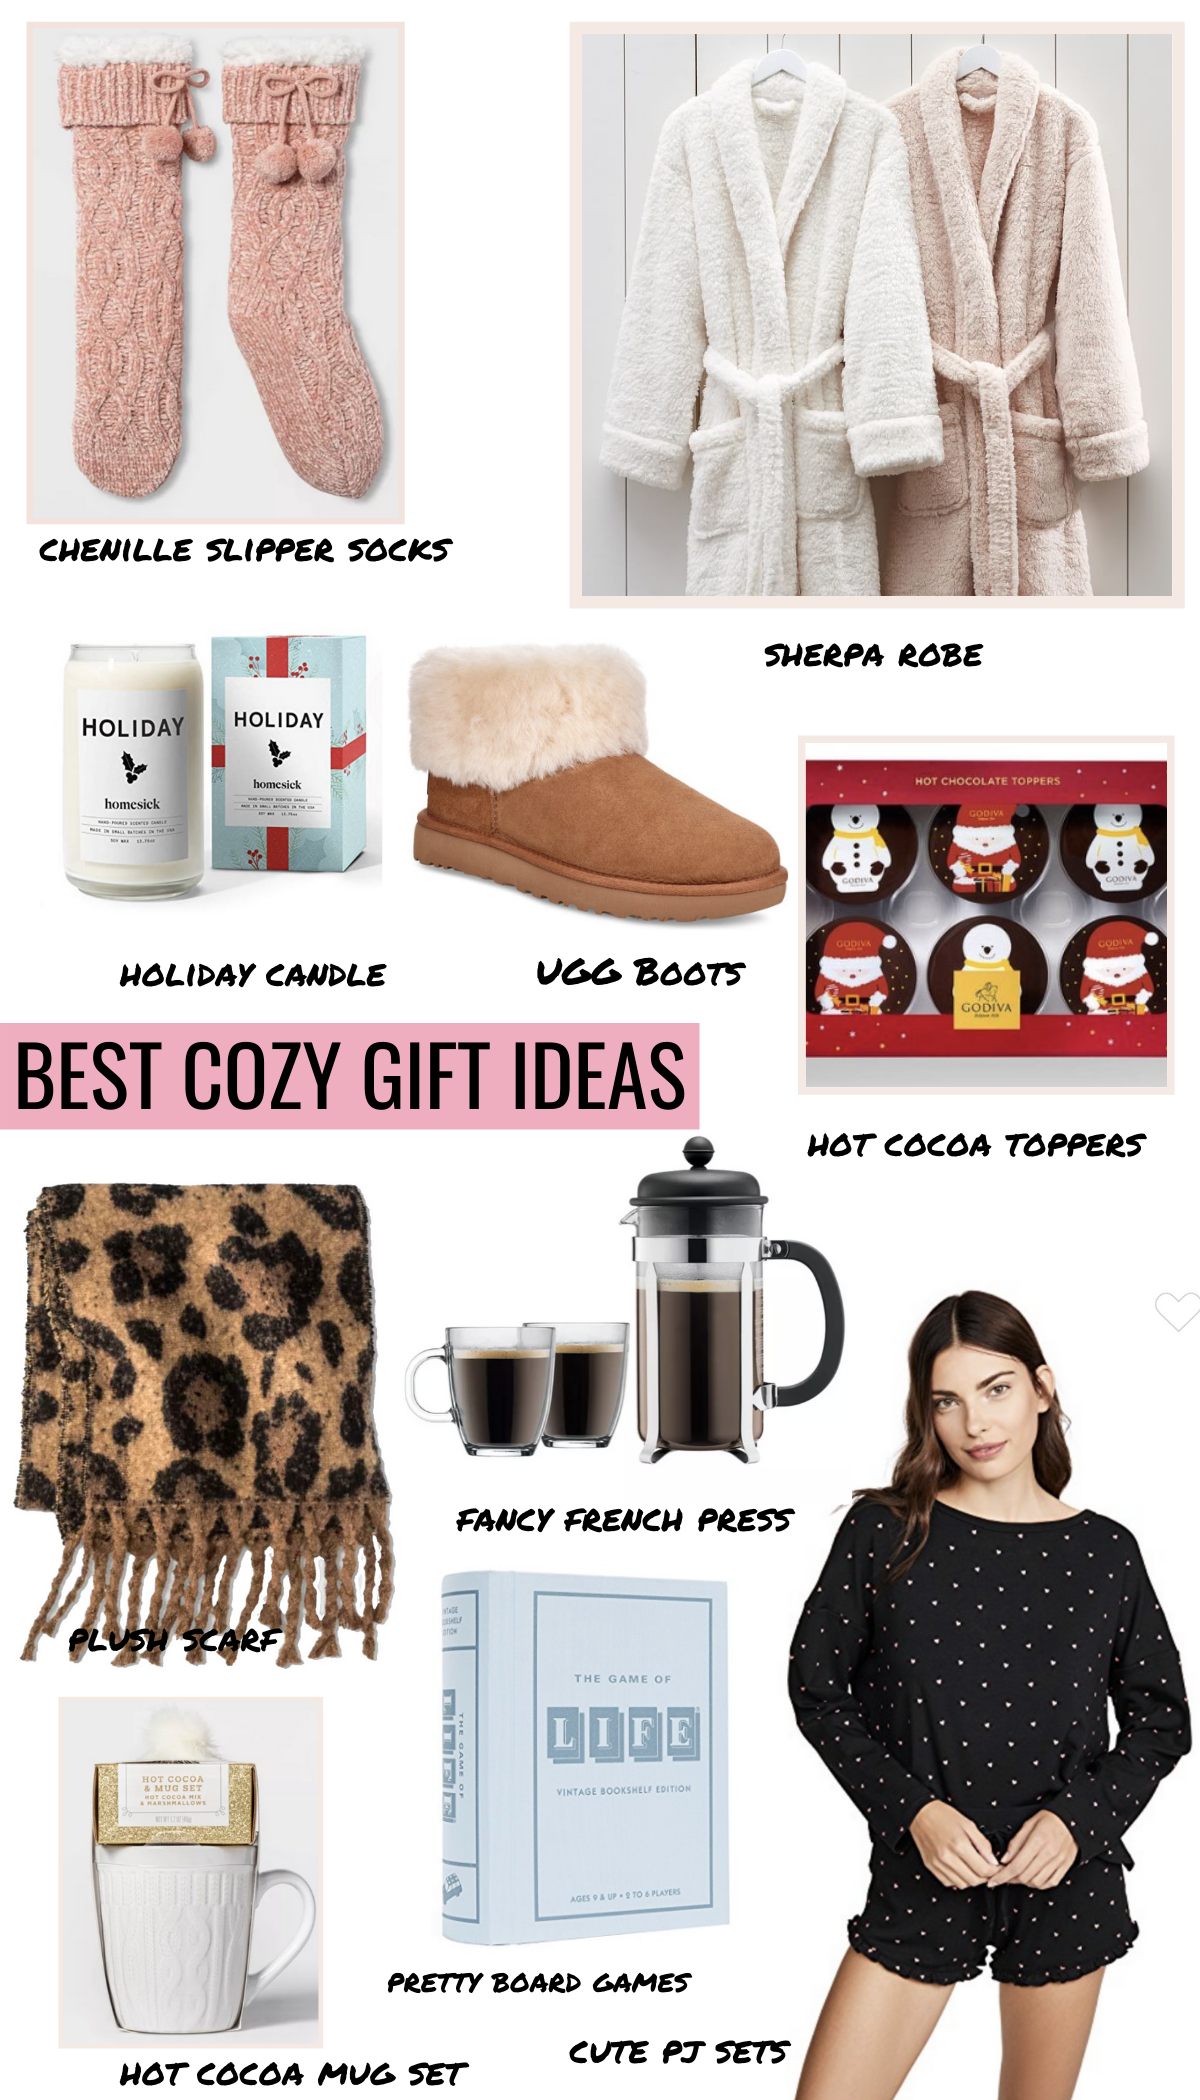 Holiday-Gift-Guide-Best-Cozy-Gift-Ideas-for-Christmas